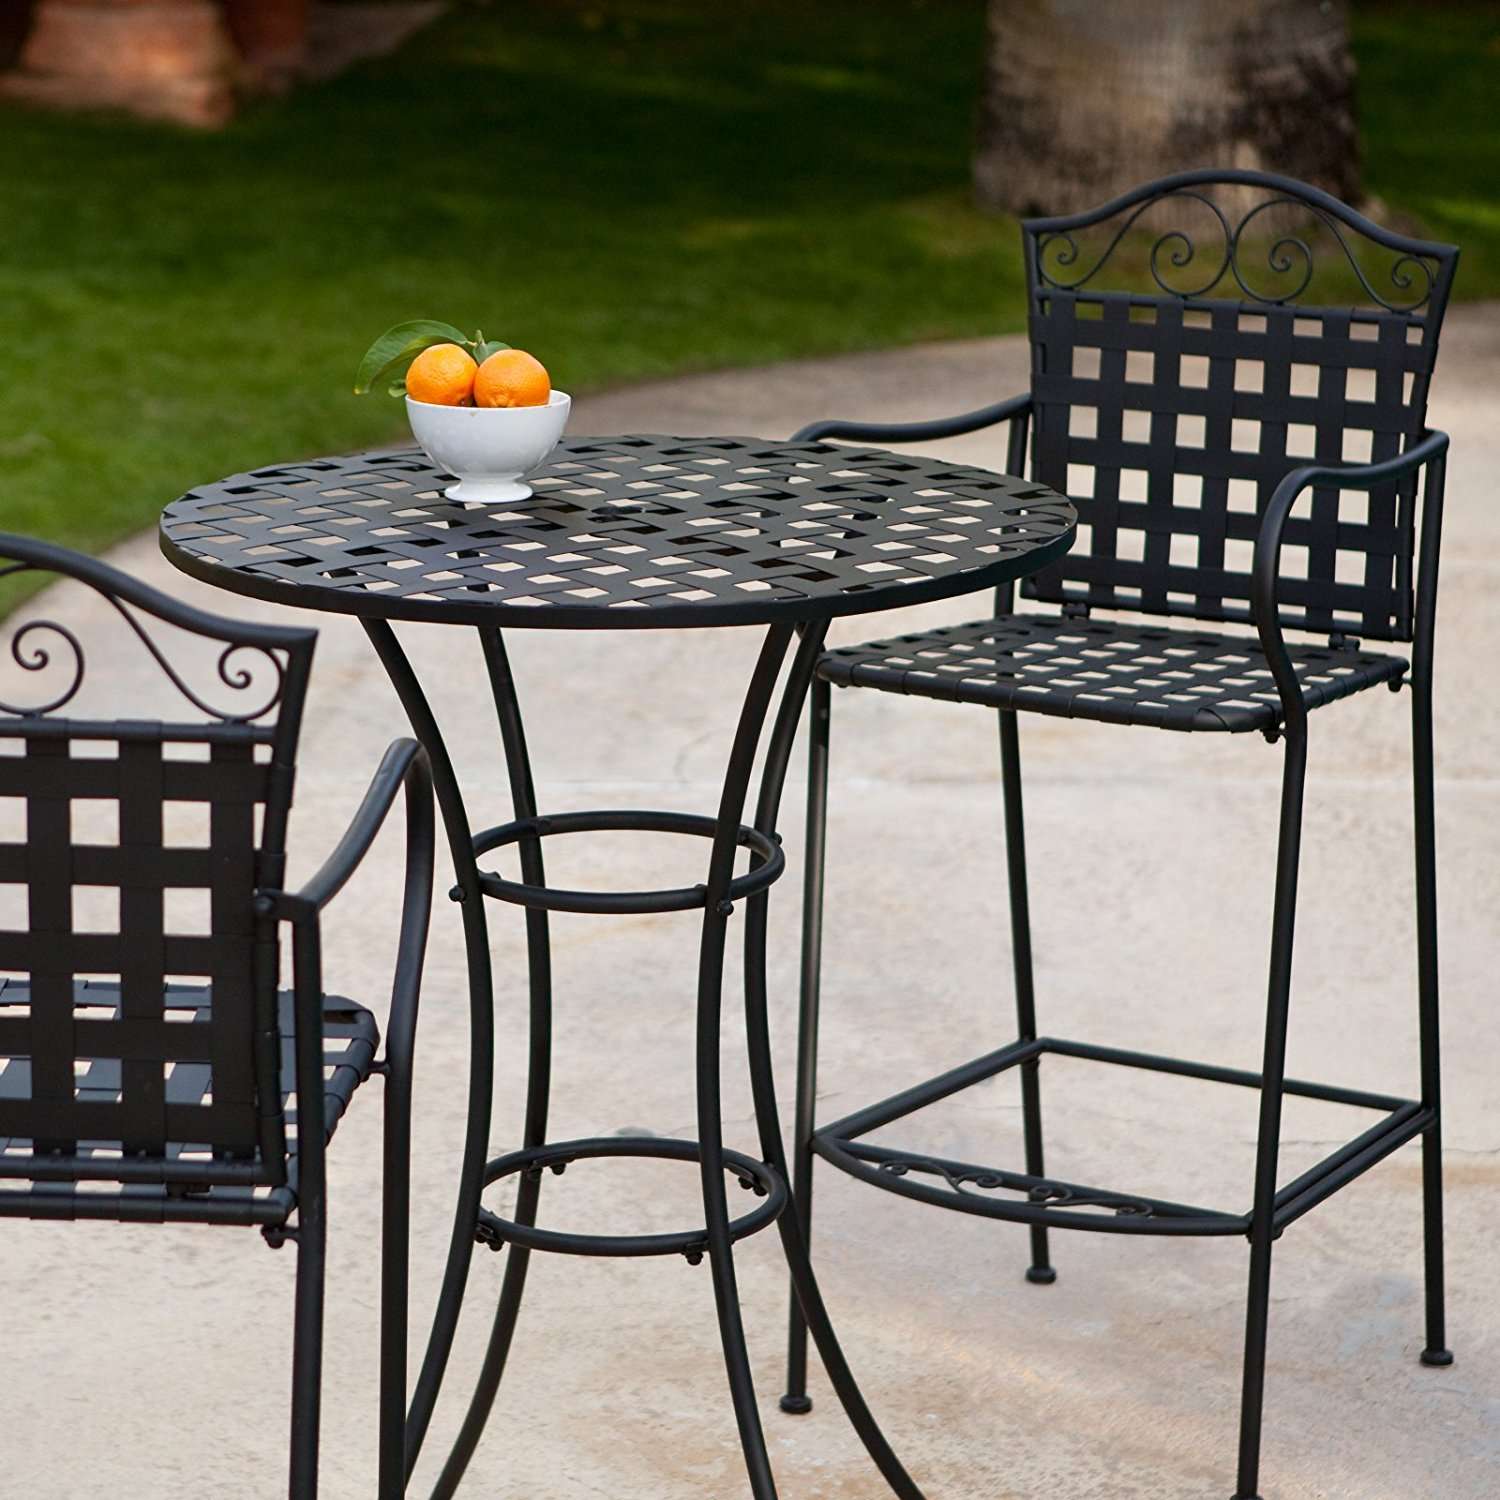 Inspirational Wrought Iron Patio Furniture Lowes